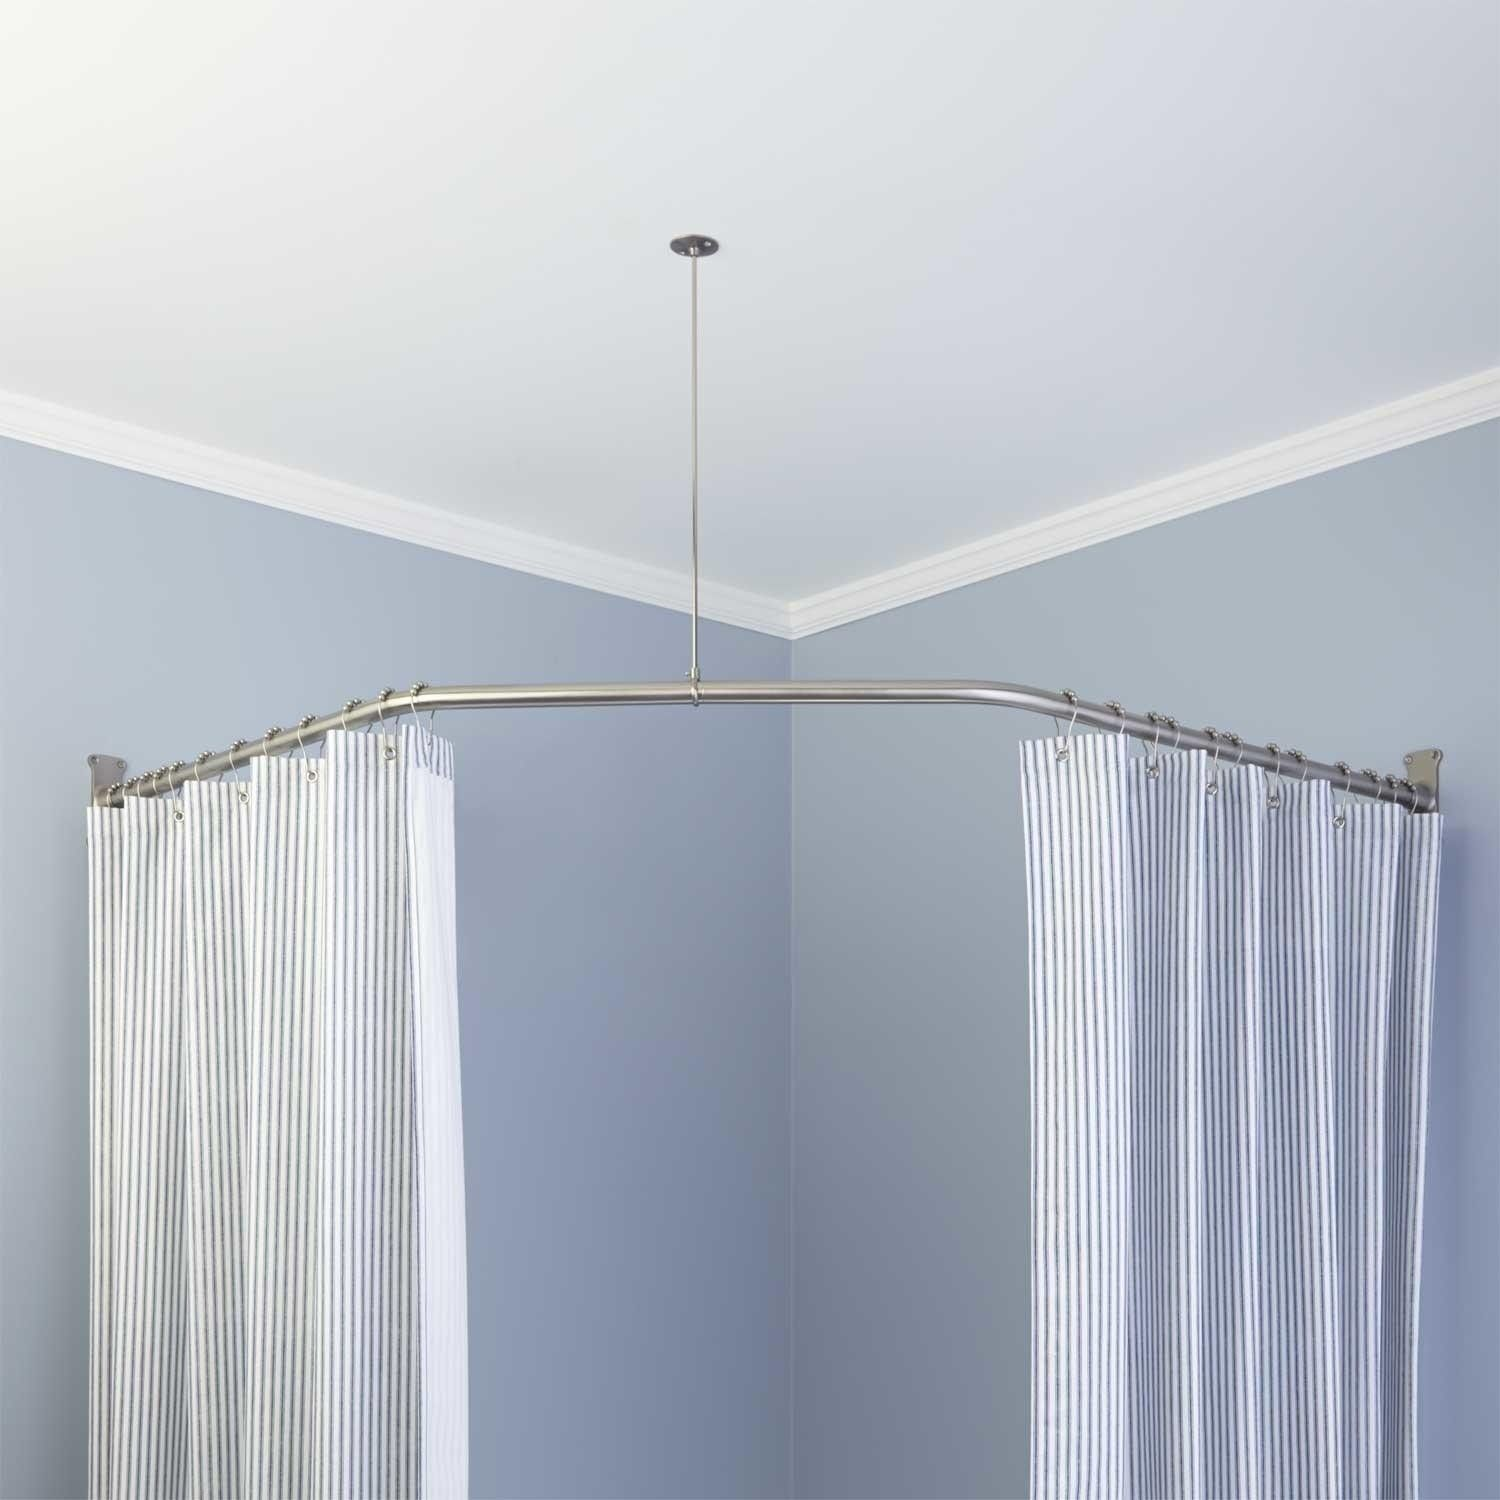 Unique Curved Ceiling Track Shower Curtain Rods Corner Shower